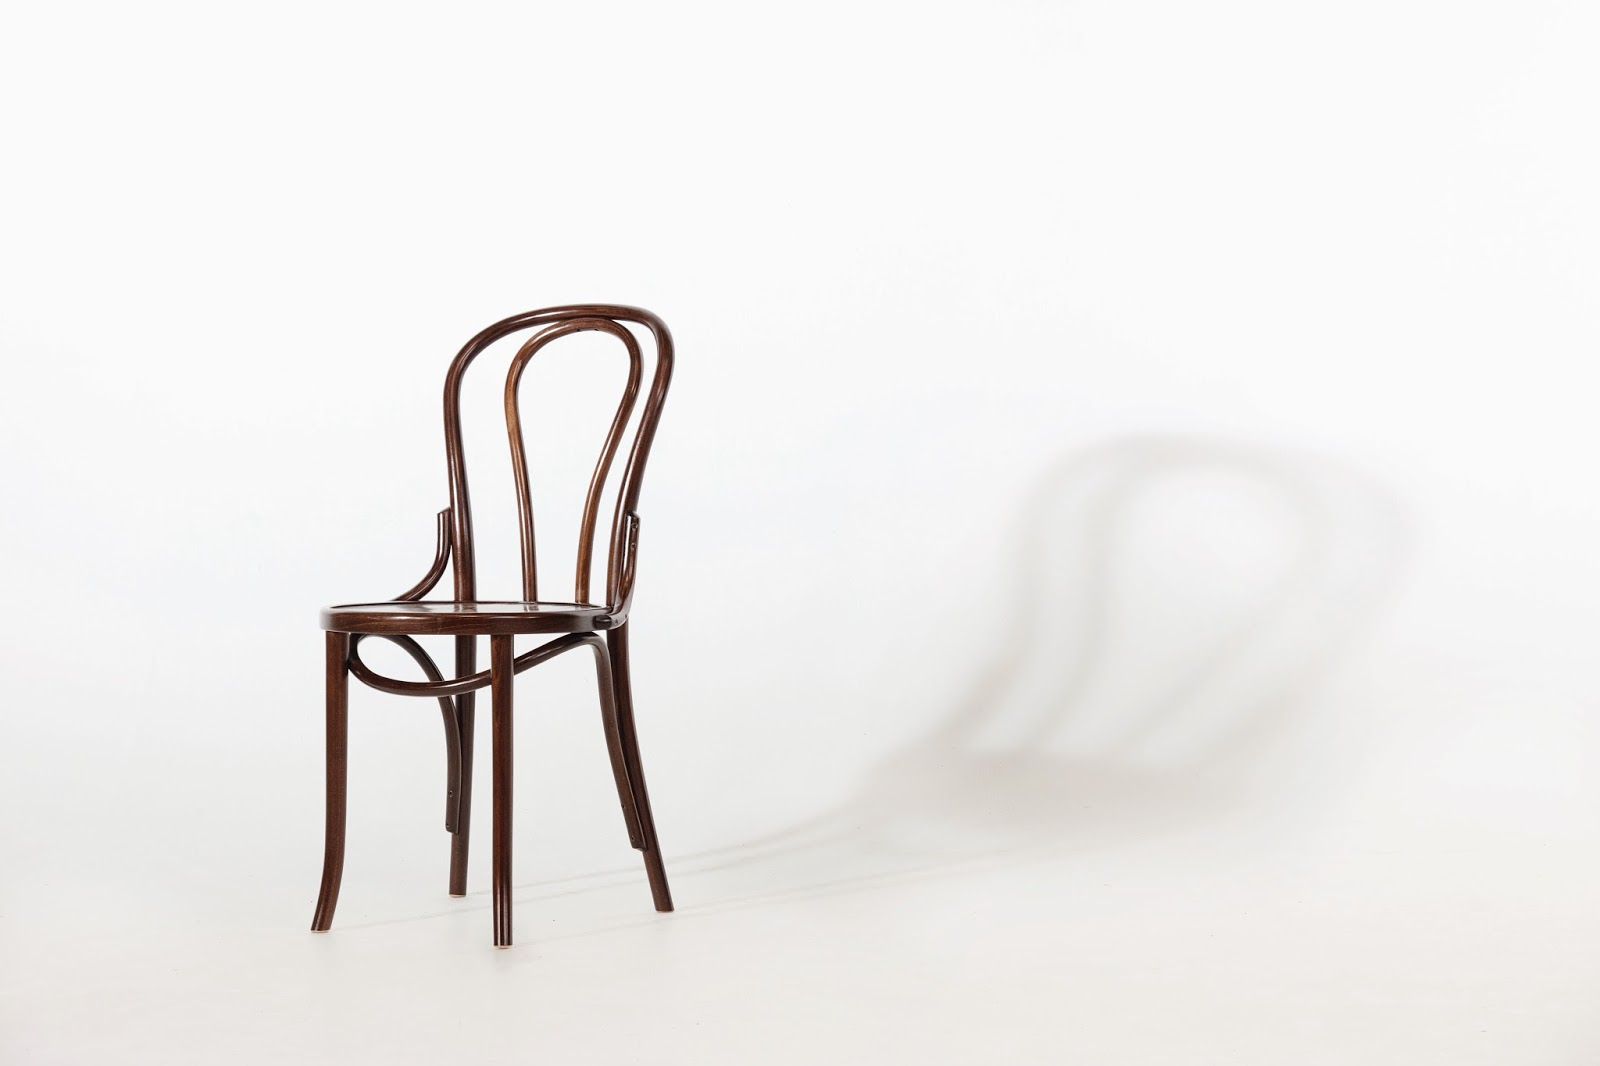 bentwood bistro chair. How Bentwood Chairs, Michael Thonet \u0026 The Iconic Fameg Furniture Can Boost Your Business Bistro Chair